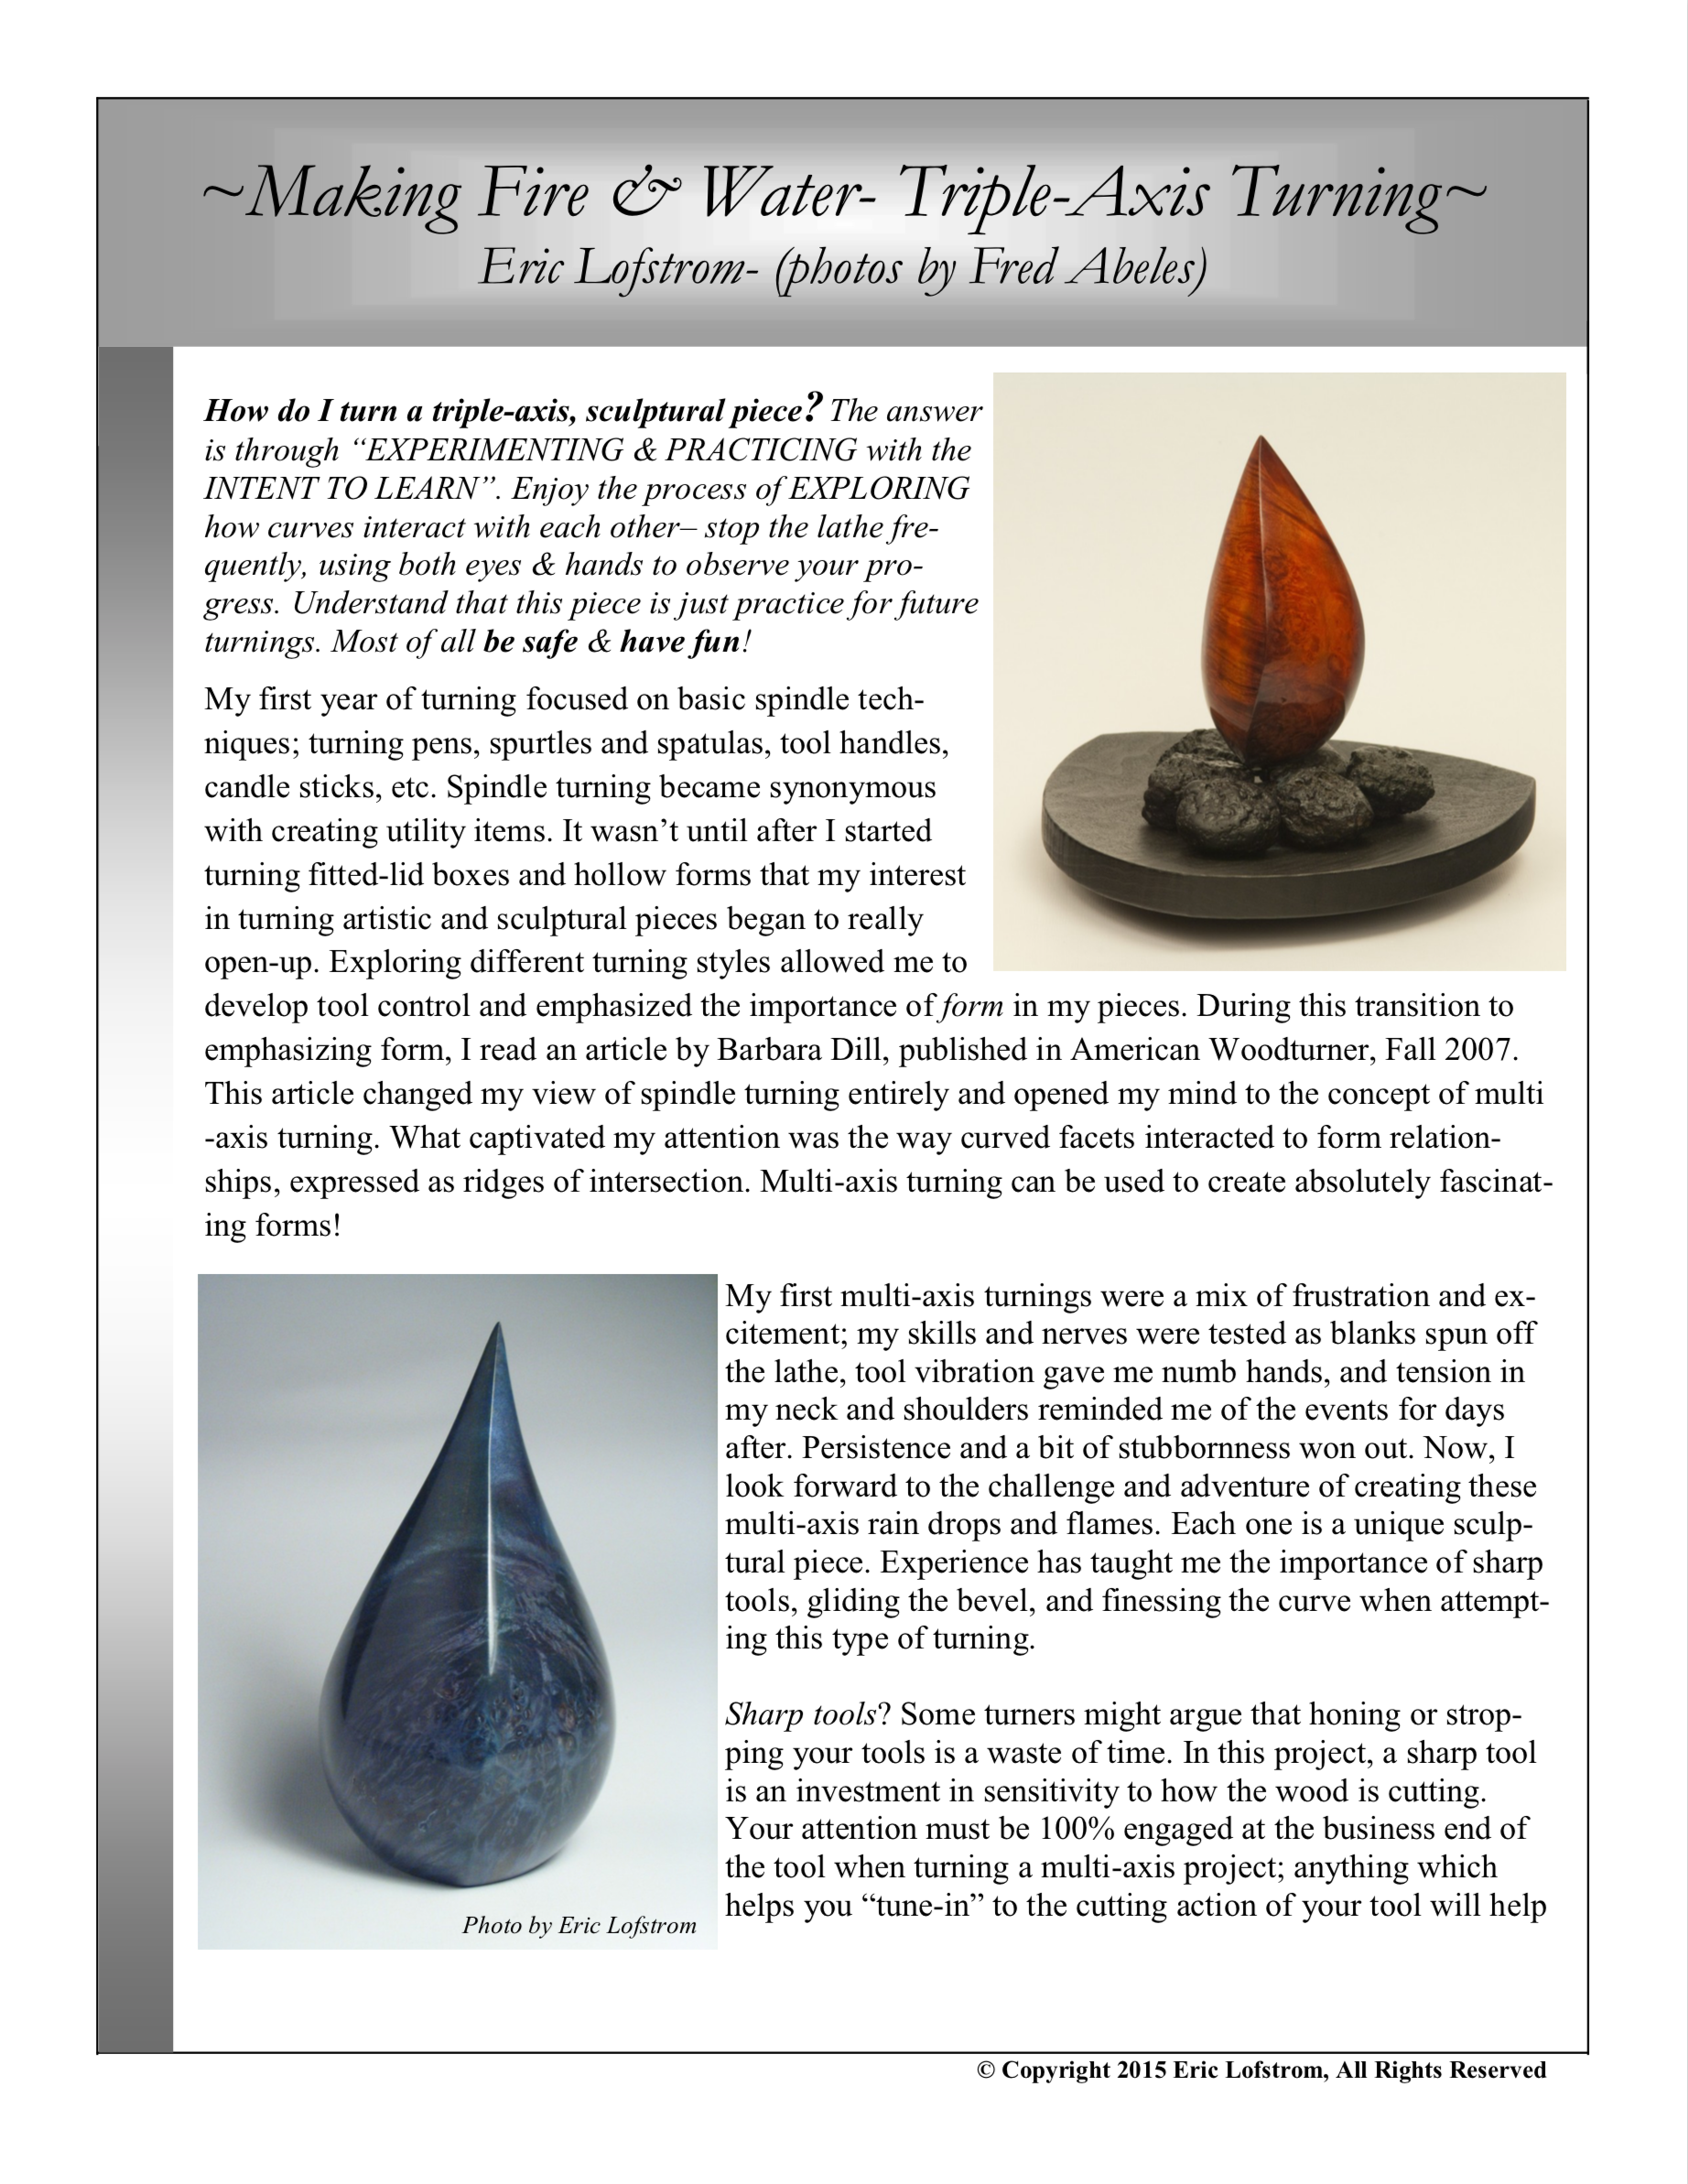 """Triple-Axis Turning: """"Resilience Series""""   This resource is designed to accompany my instruction of turning multi-axis sculptural pieces using spindle turning techniques I follow to create pieces in my Resilience Series."""